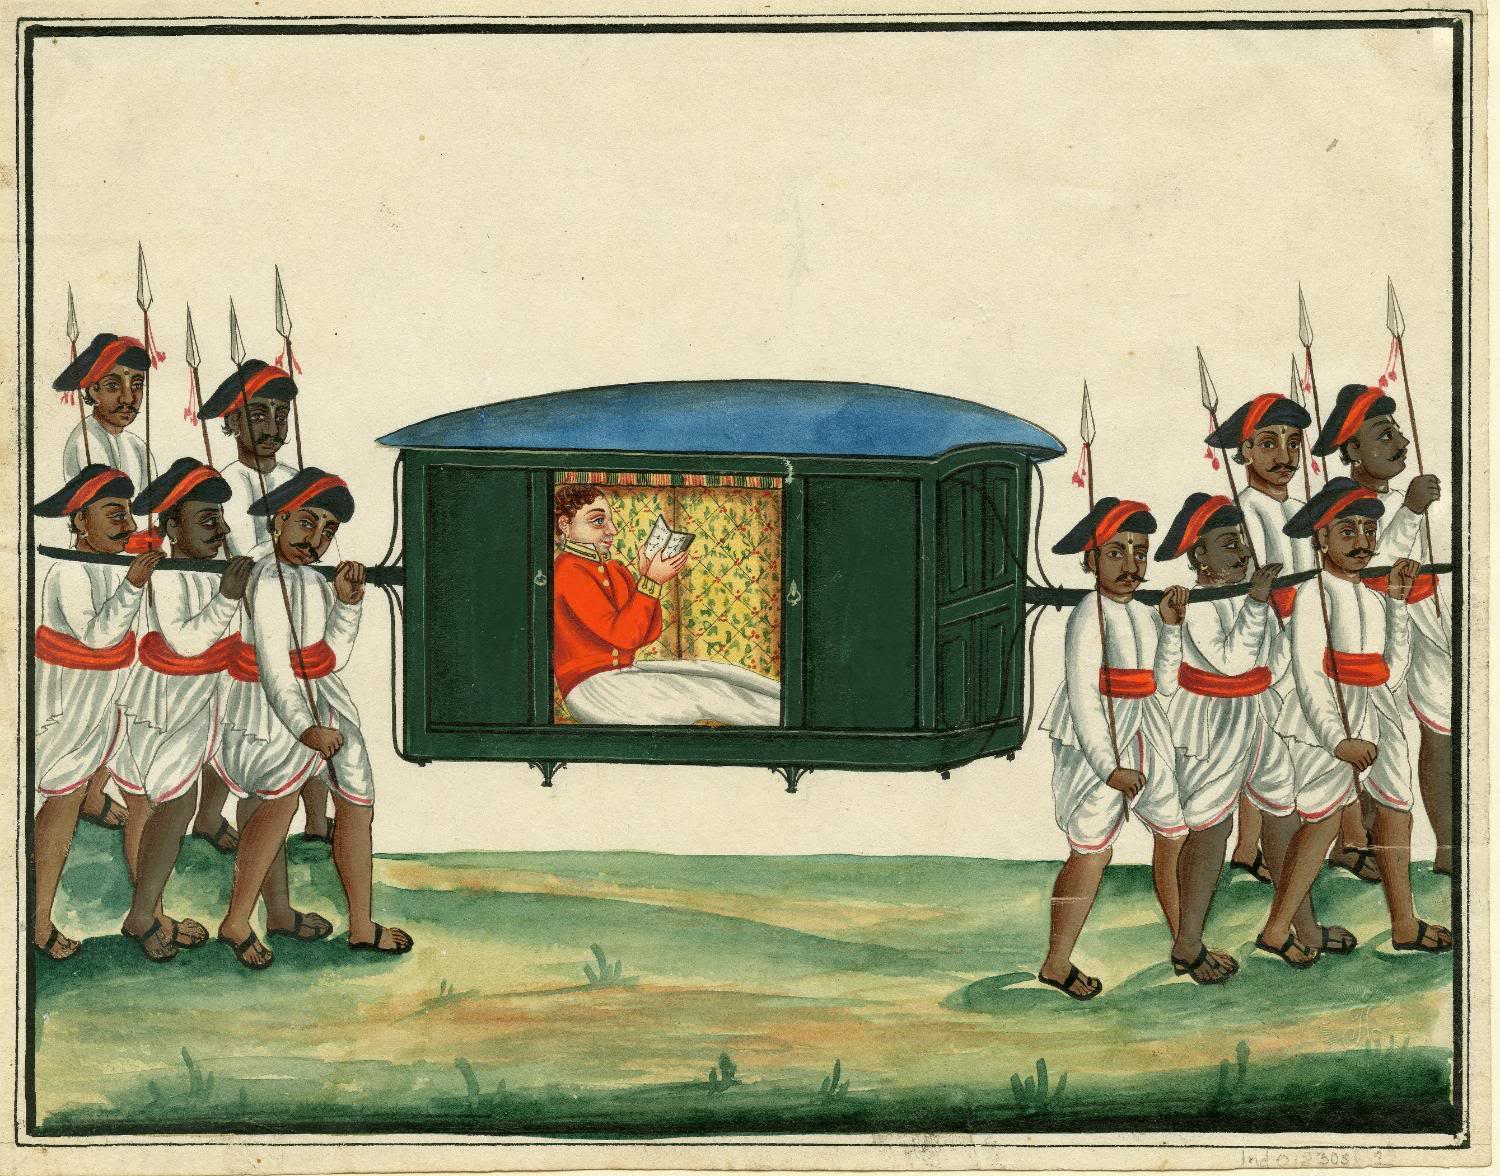 palanquin bearers essay Palanquin bearers essay writer, do your homework em portugues, affordable essay writing service march 27, 2018 leave a comment by the south's role in the creation.